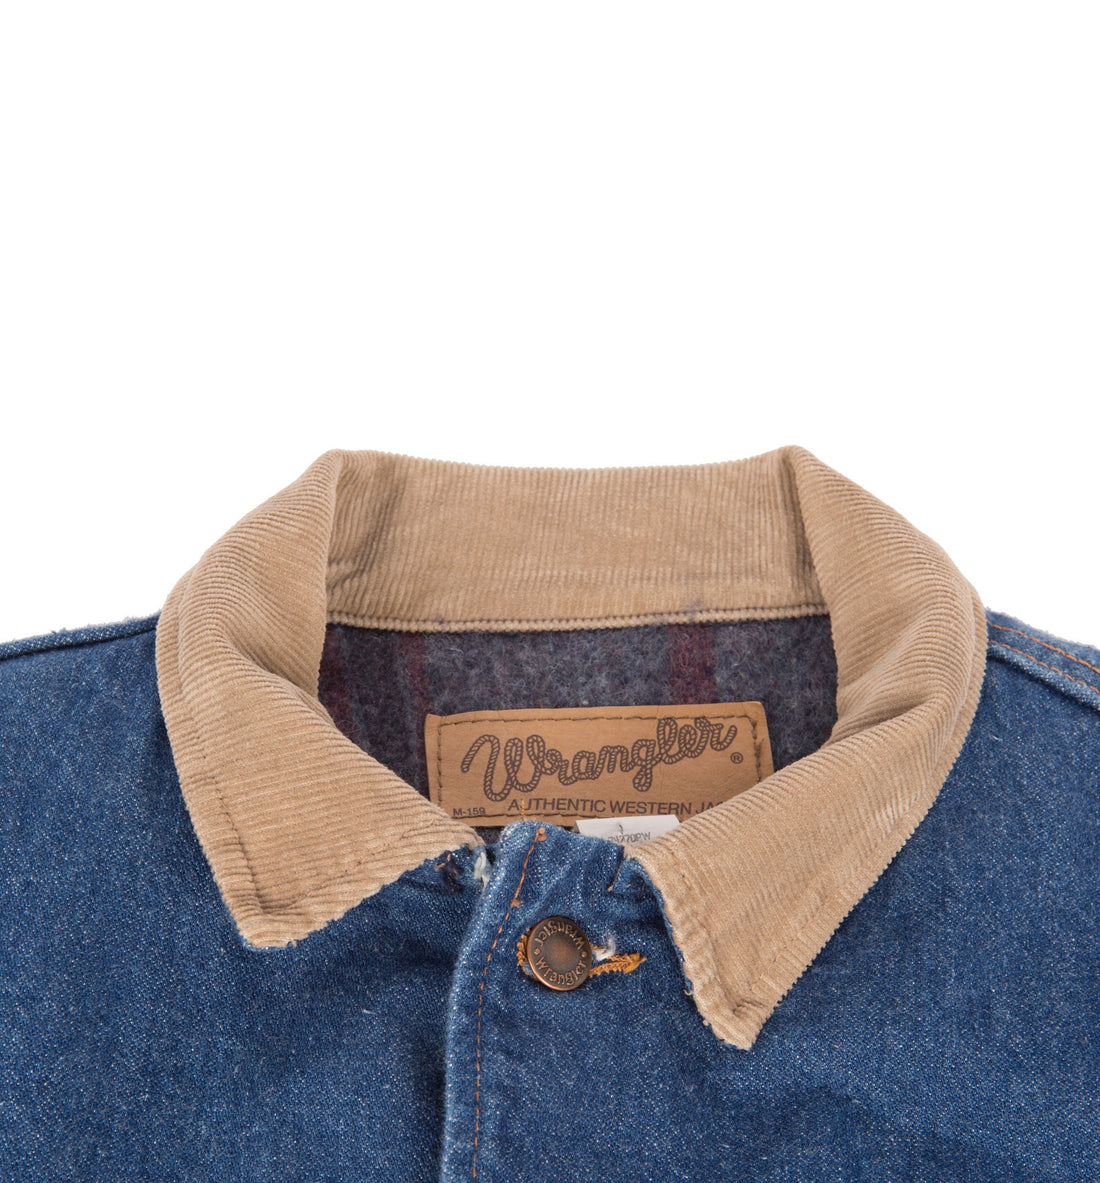 Vintage Wrangler Lined Denim Jacket